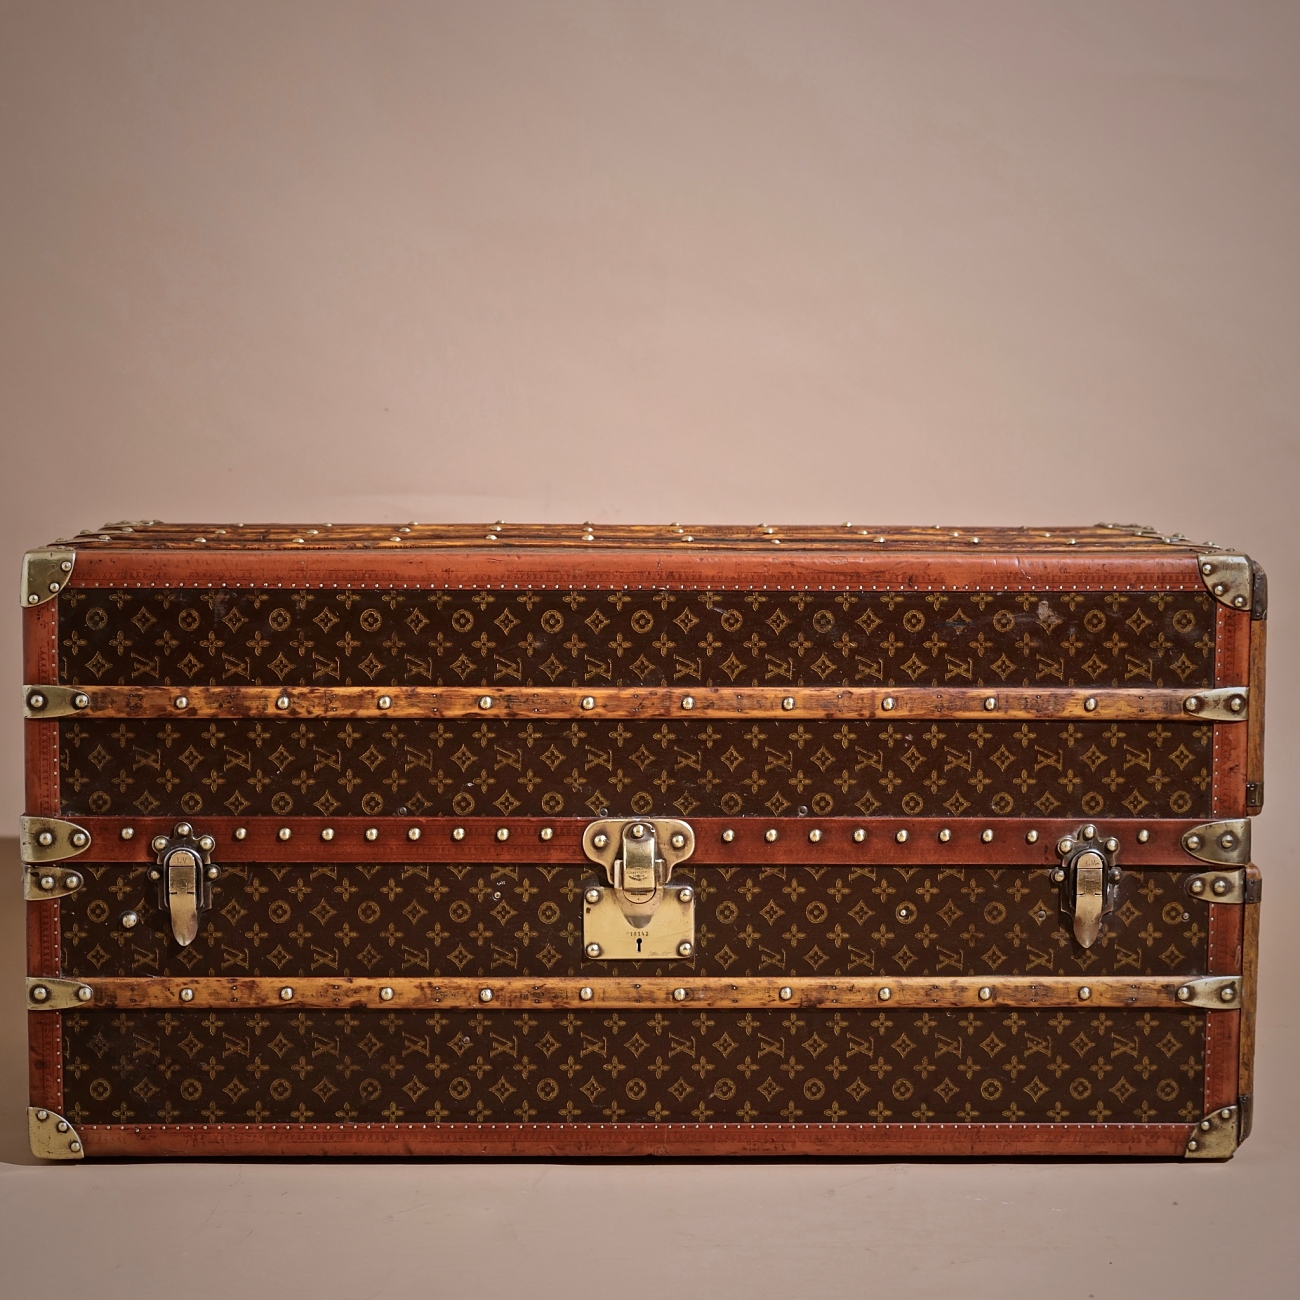 the-well-traveled-trunk-louis-vuitton-thumbnail-product-5711